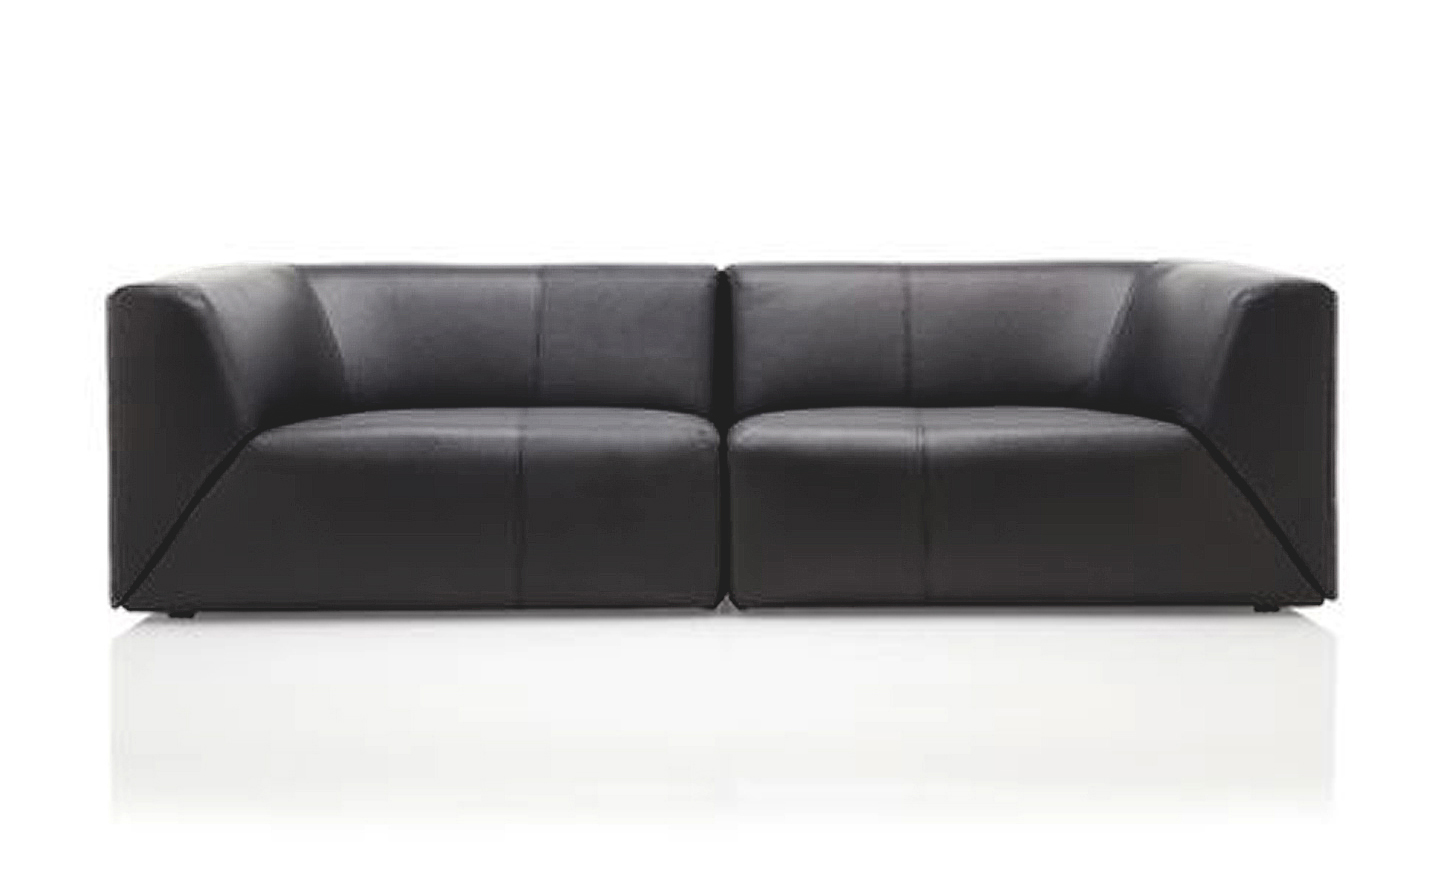 Sofa de cuero contemporaneo bs 4501 - Sofas contemporaneos ...